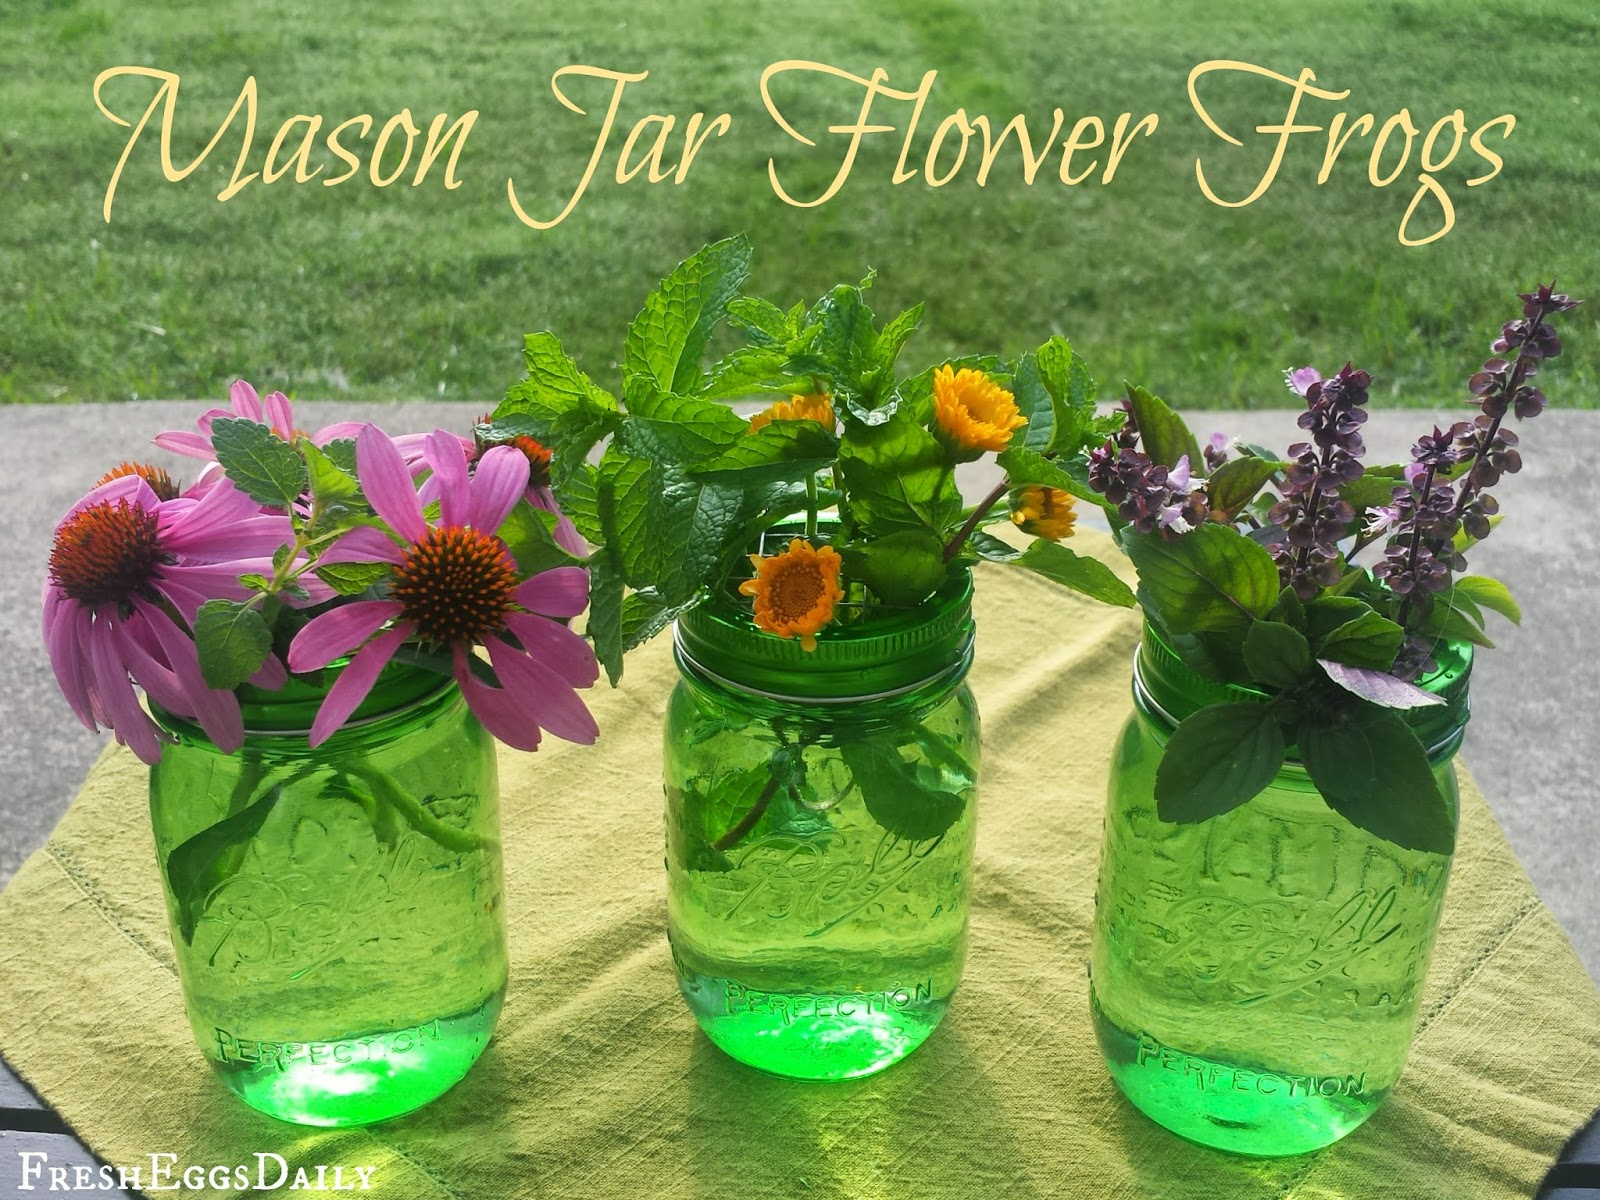 diy mason jar flower frogs fresh eggs daily